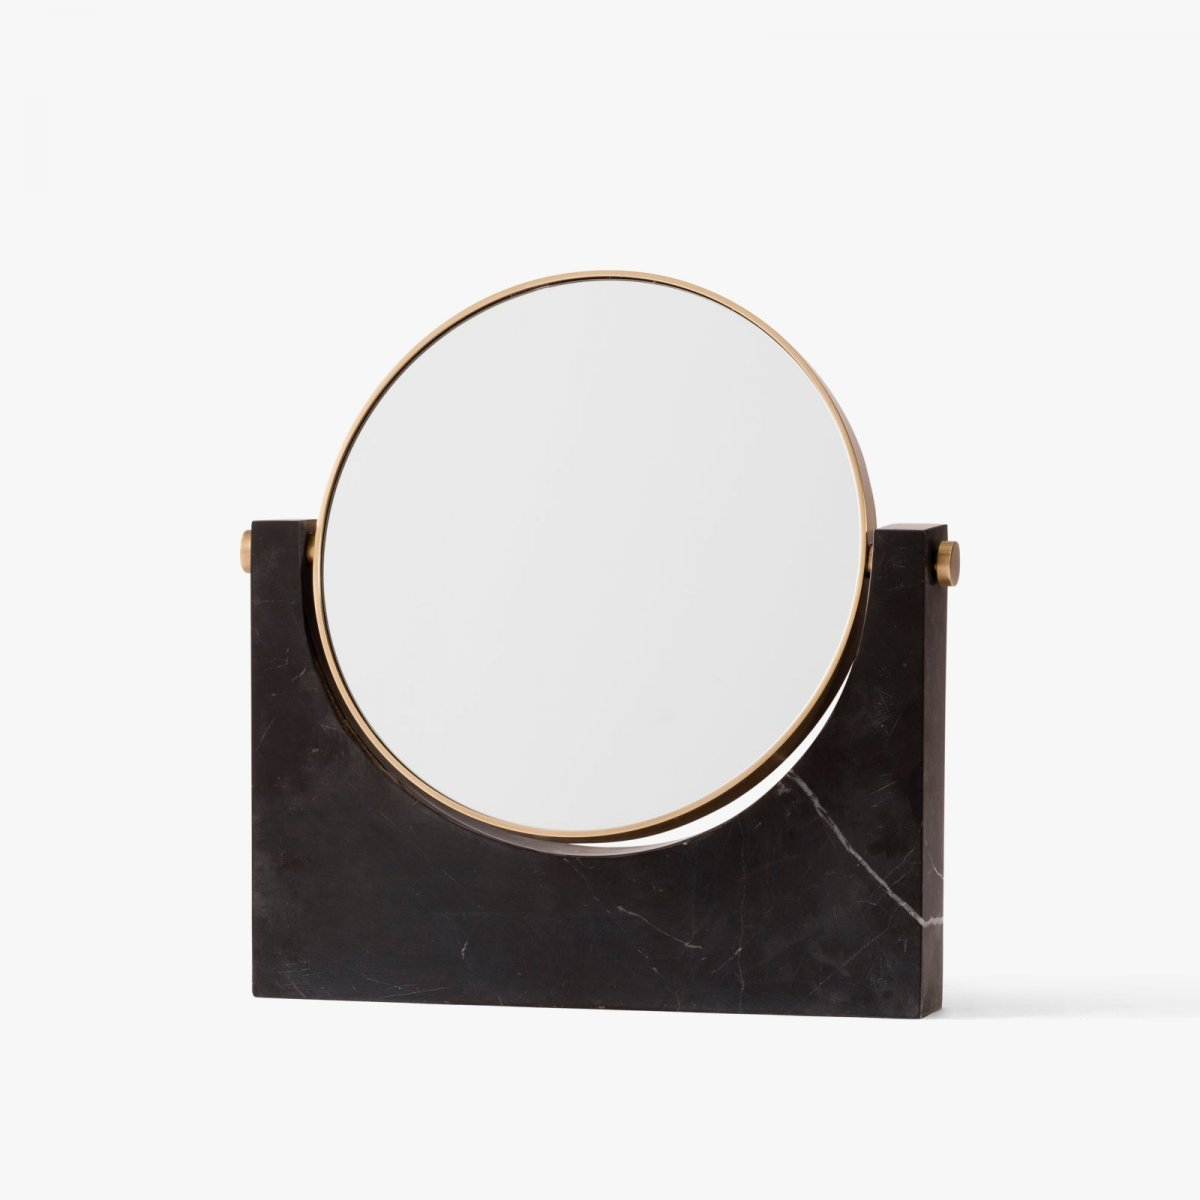 Pepe Marble Mirror, black.